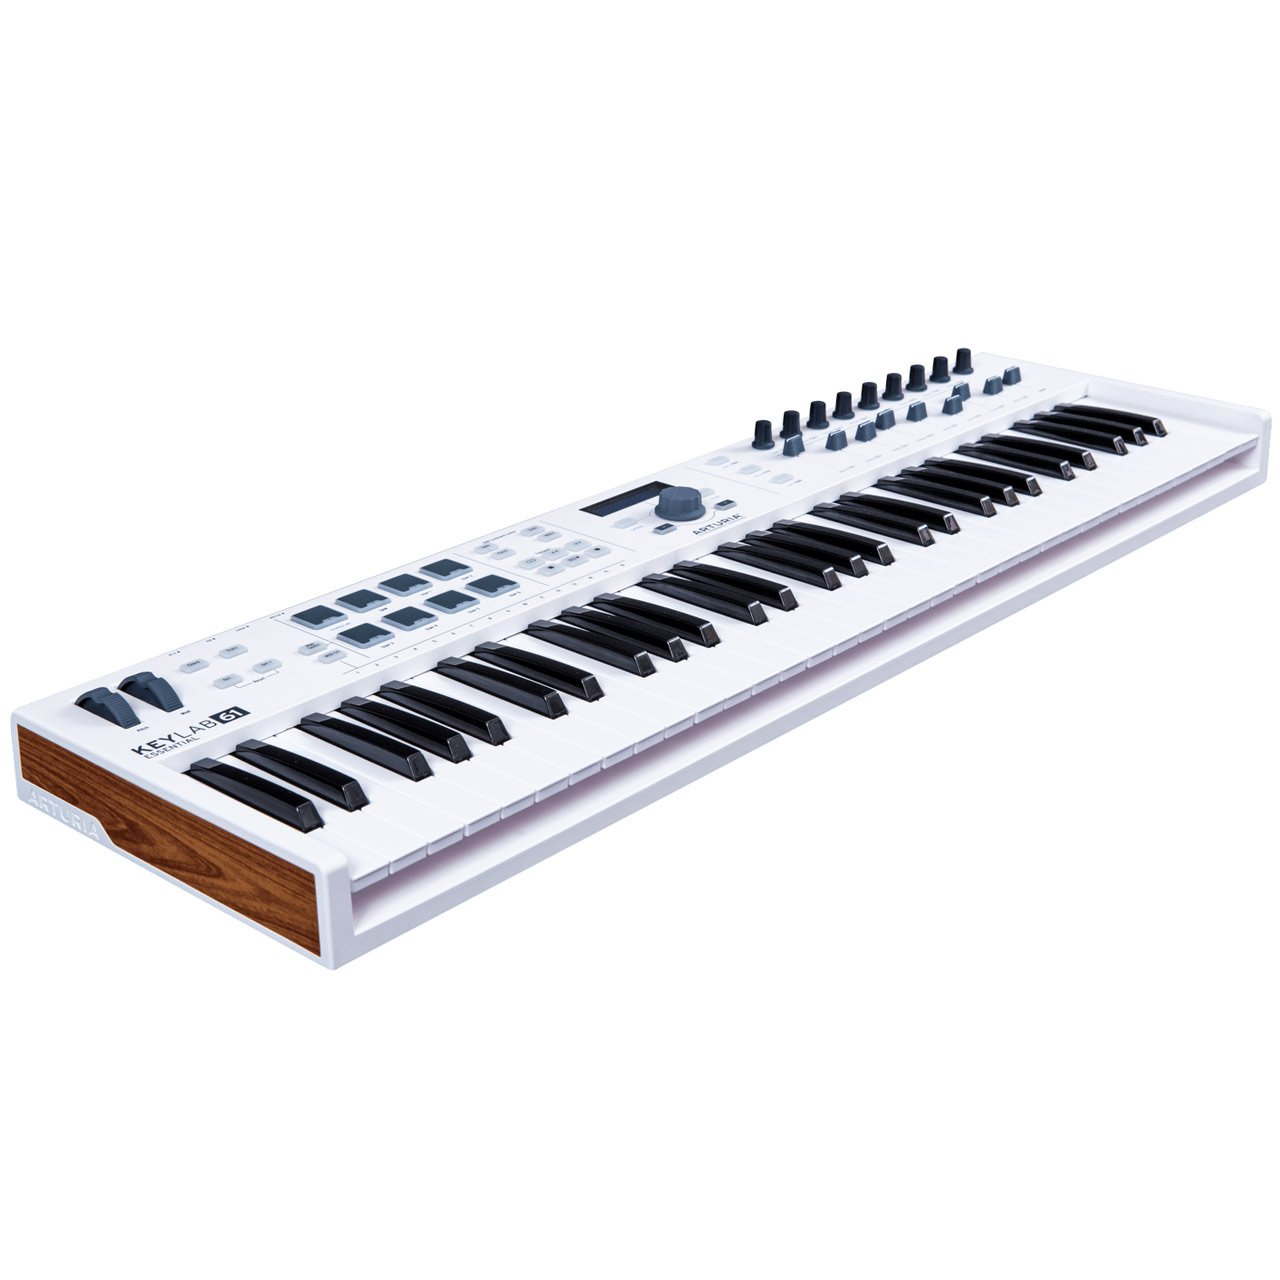 arturia keylab essential 61 semi weighted usb midi controller keyboard sounds easy. Black Bedroom Furniture Sets. Home Design Ideas